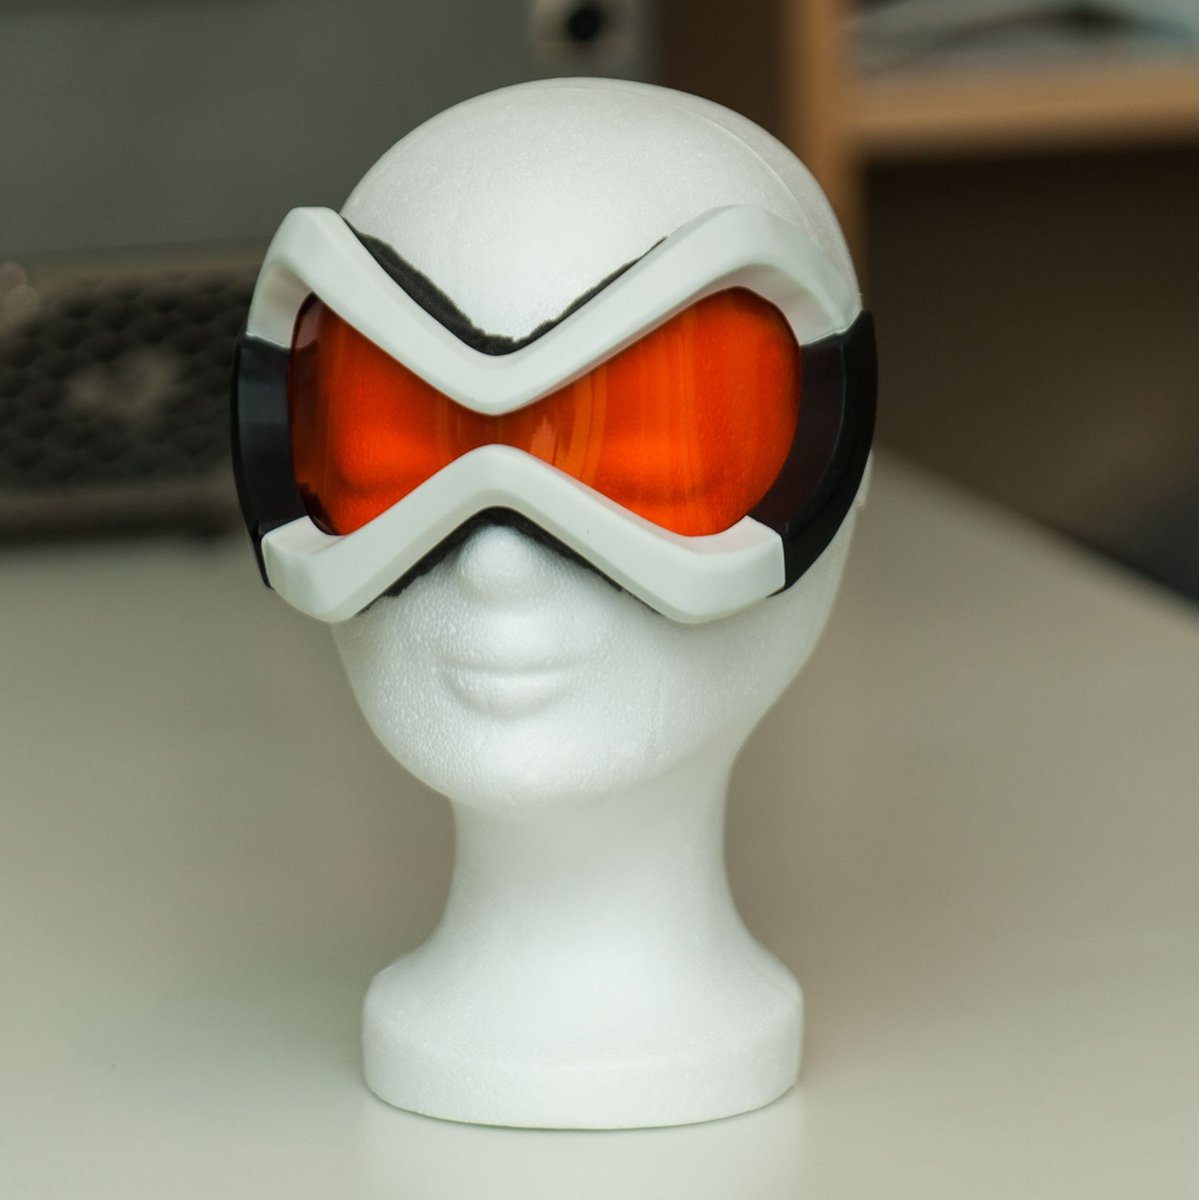 Tracer head piece is done. #tracer #overwatch #costume #diy #blizzard #cosplay #cosplaying #thinkbig_studios #3dprinting #3dprint<br>http://pic.twitter.com/mNjNqyi5RD